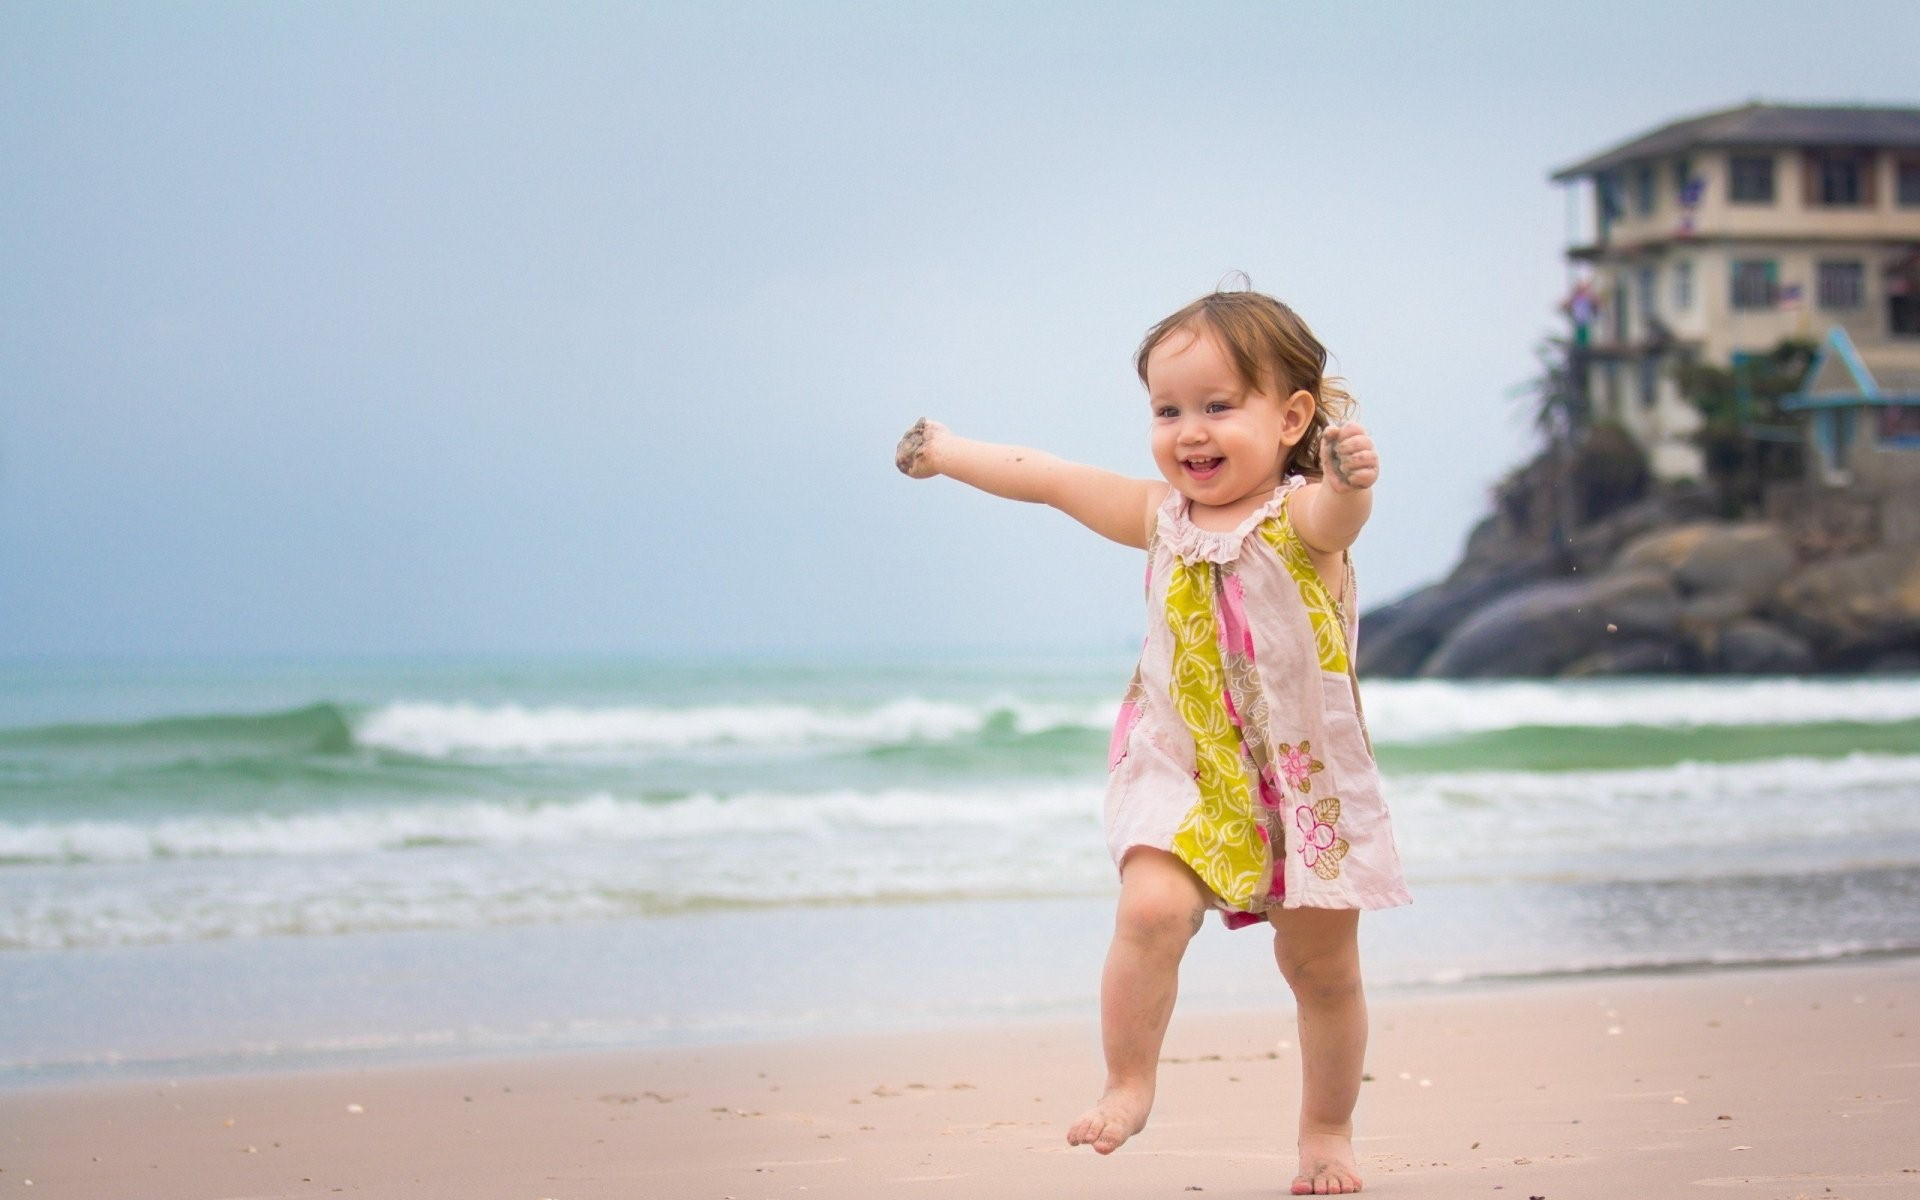 Cute Baby Girl Wallpapers Free Download Hd Beautiful - Cute Happy Girl Quotes - HD Wallpaper